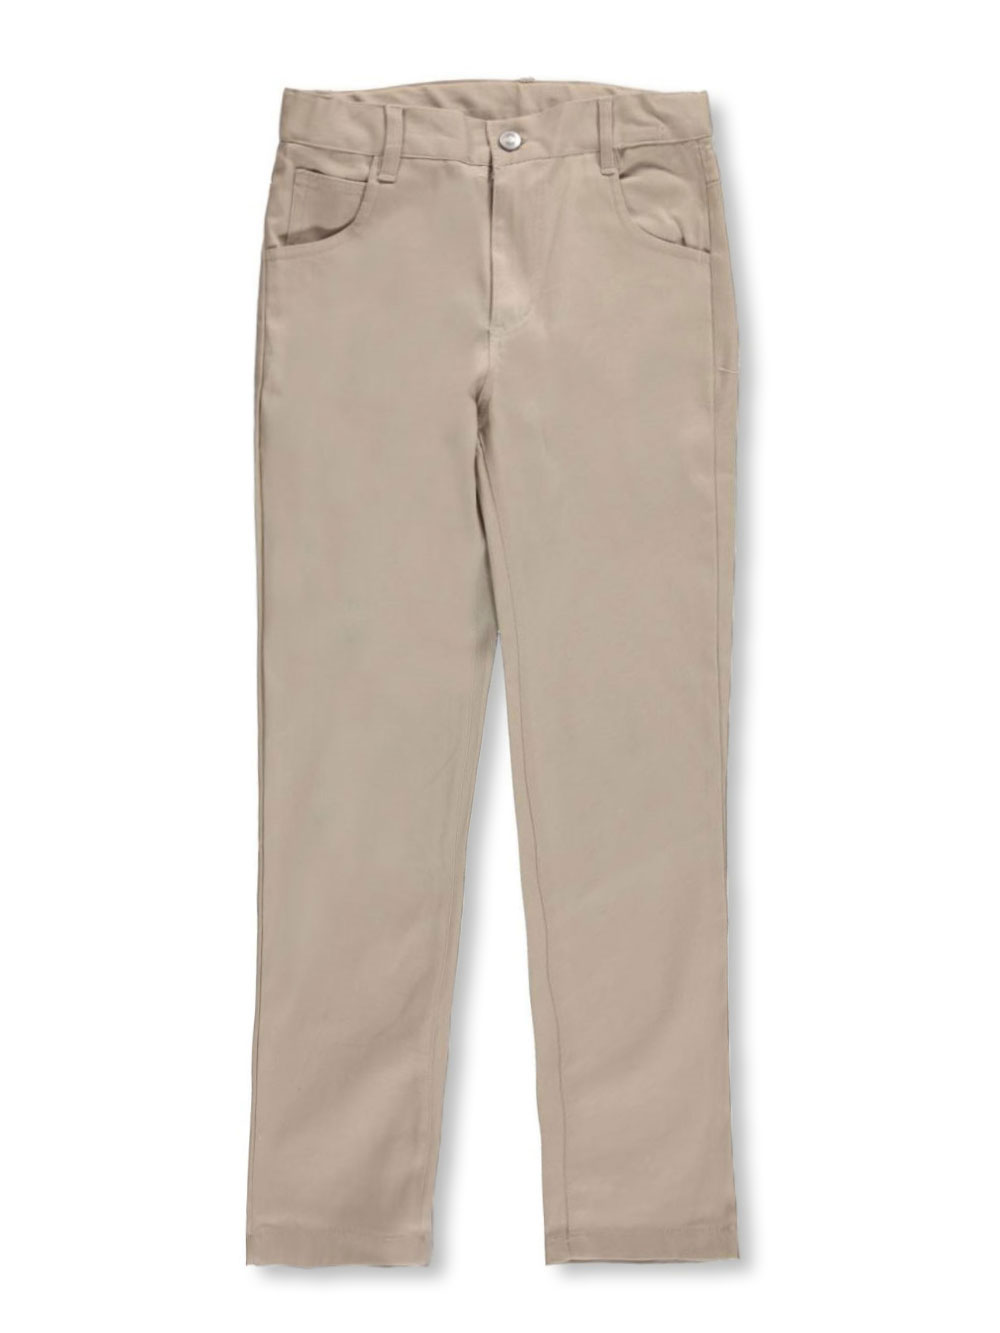 Image of Denice Stretch Big Girls Jean Pocket Skinny Uniform Pants Sizes 7  16  khaki 8